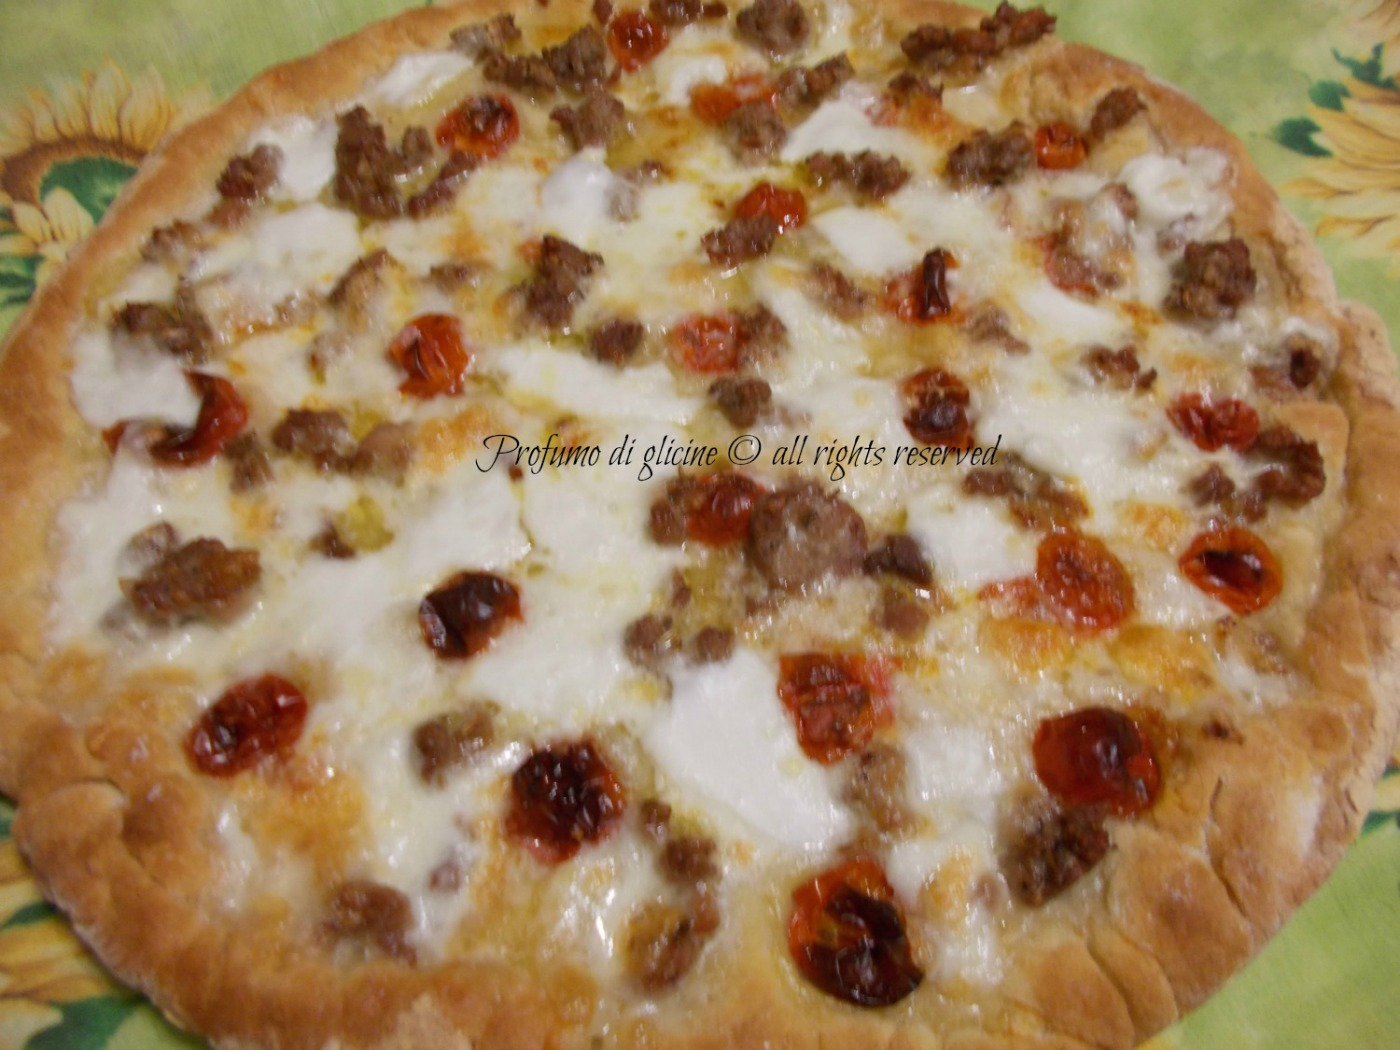 pizza pizza se a soning virgin spicy white spicy s a ngri a pizza ...